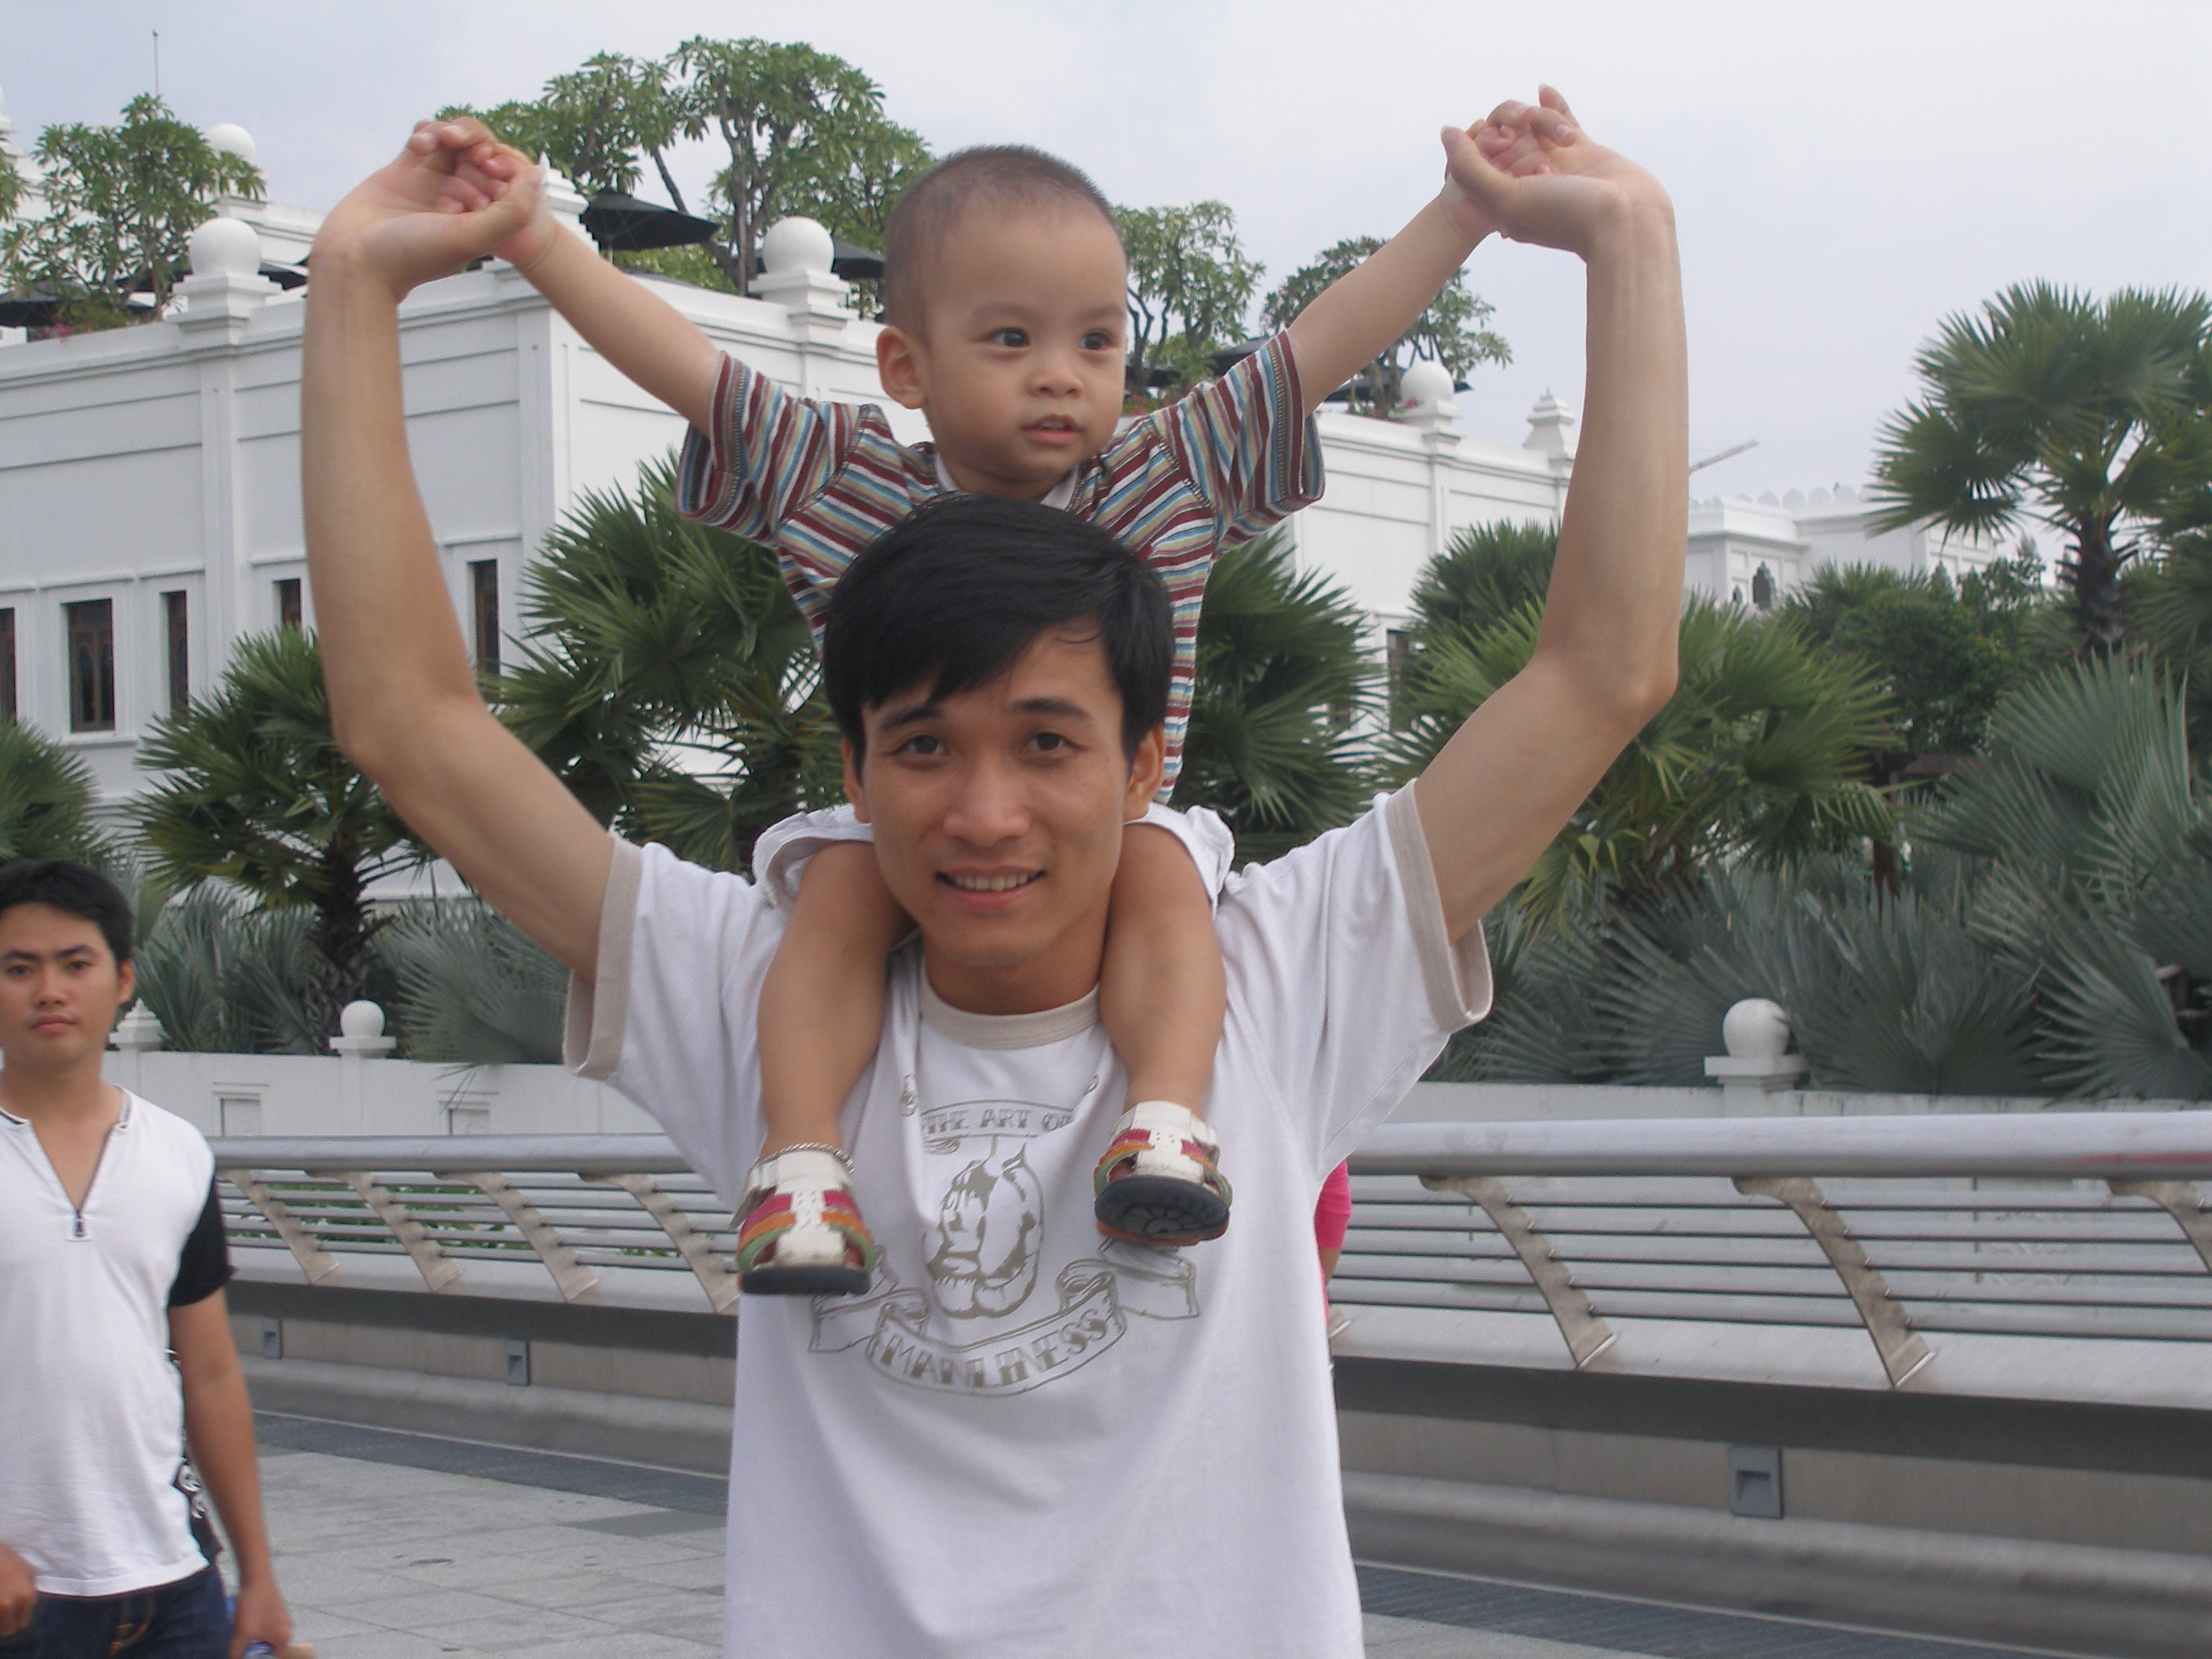 Father and Son, Adorable, Shoulders, Kid, Life, HQ Photo